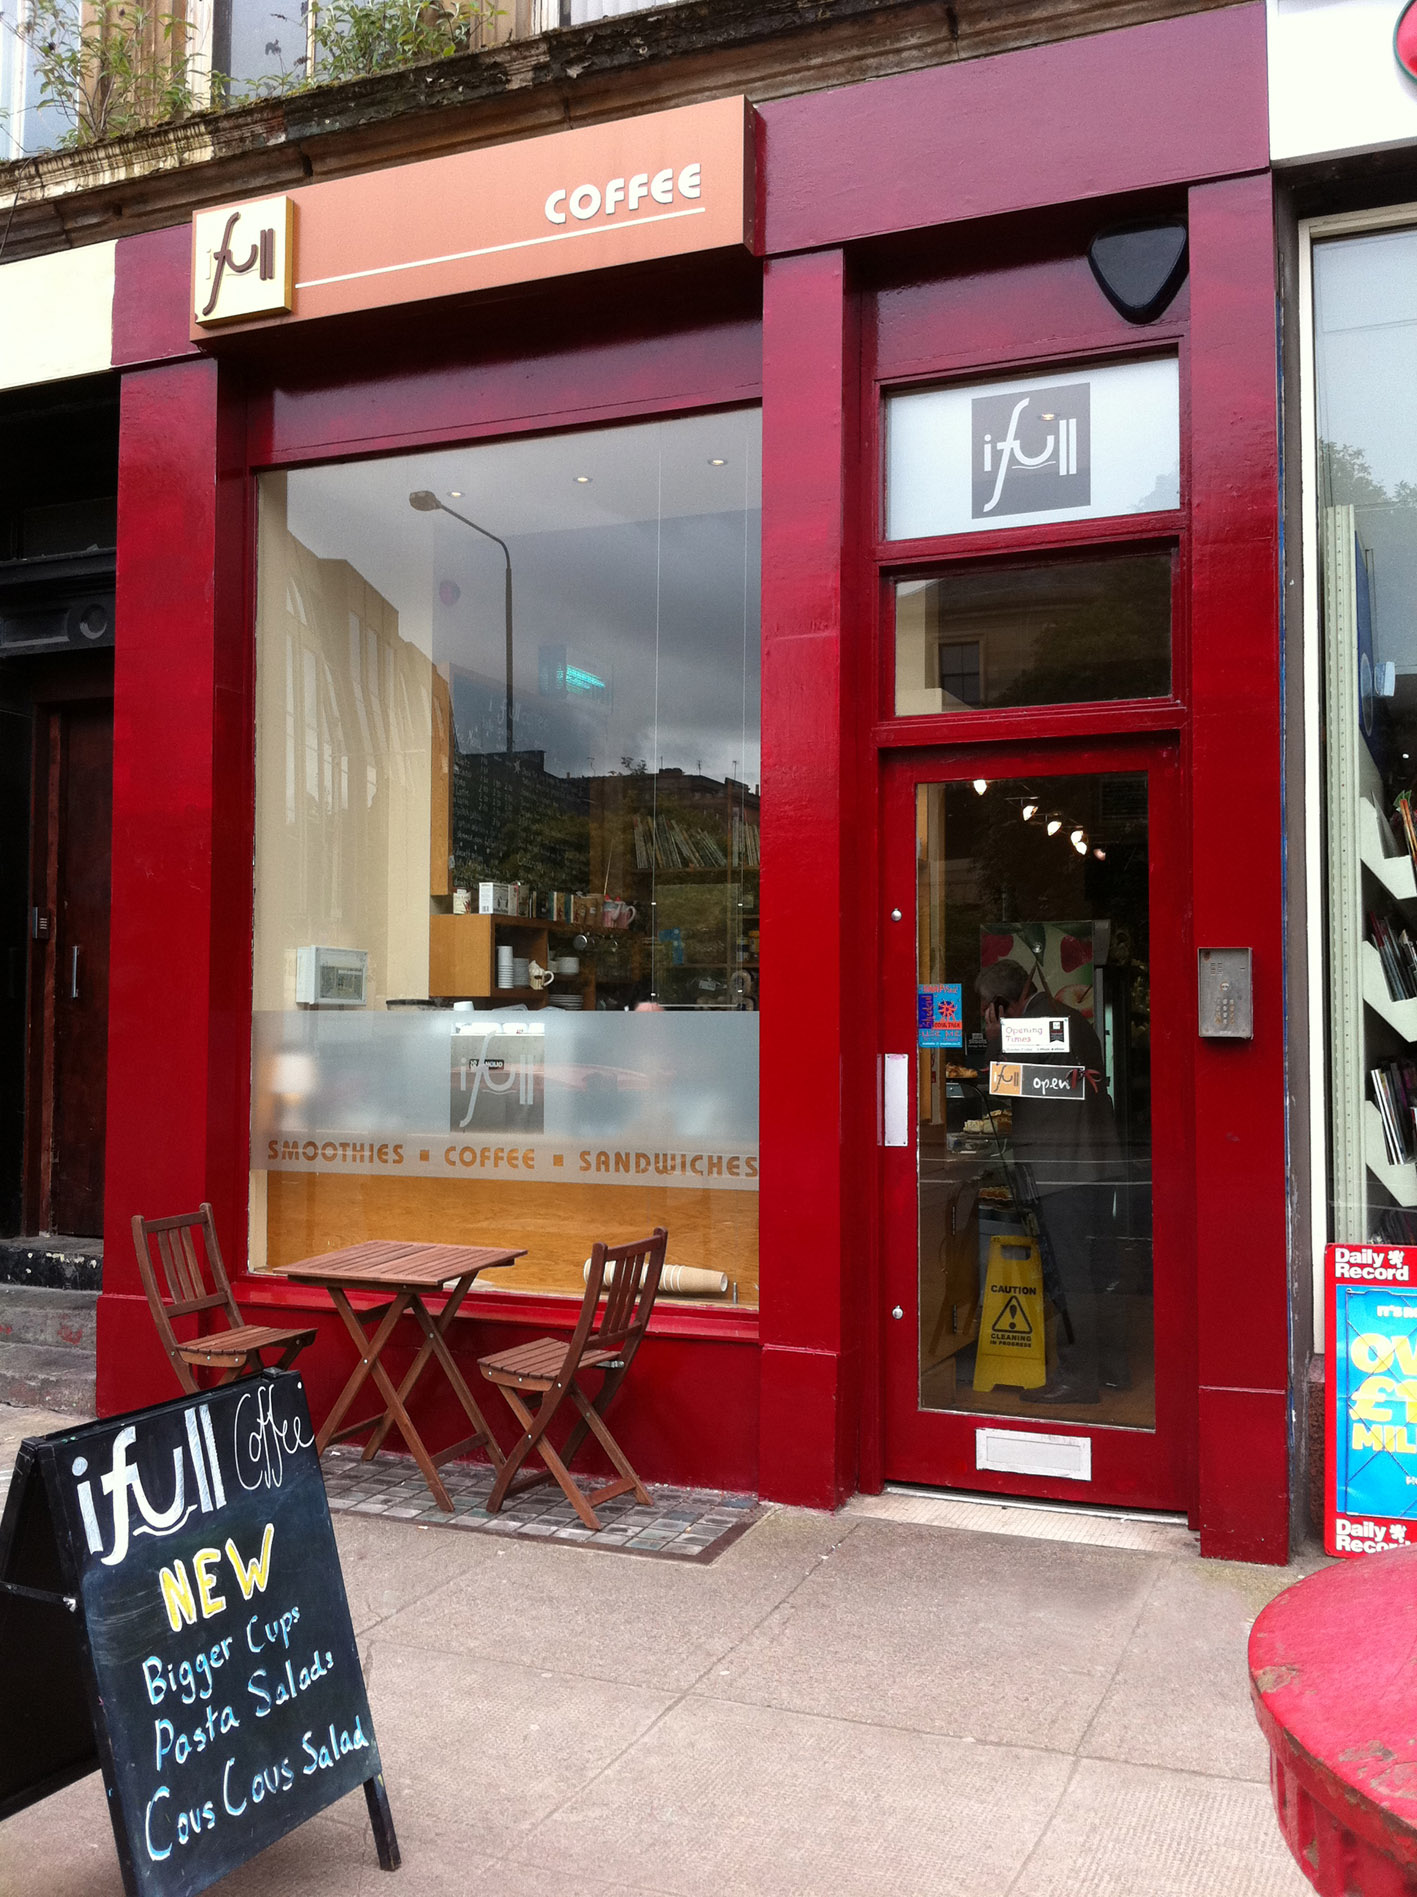 iFull Cafe – Glasgow, Scotland